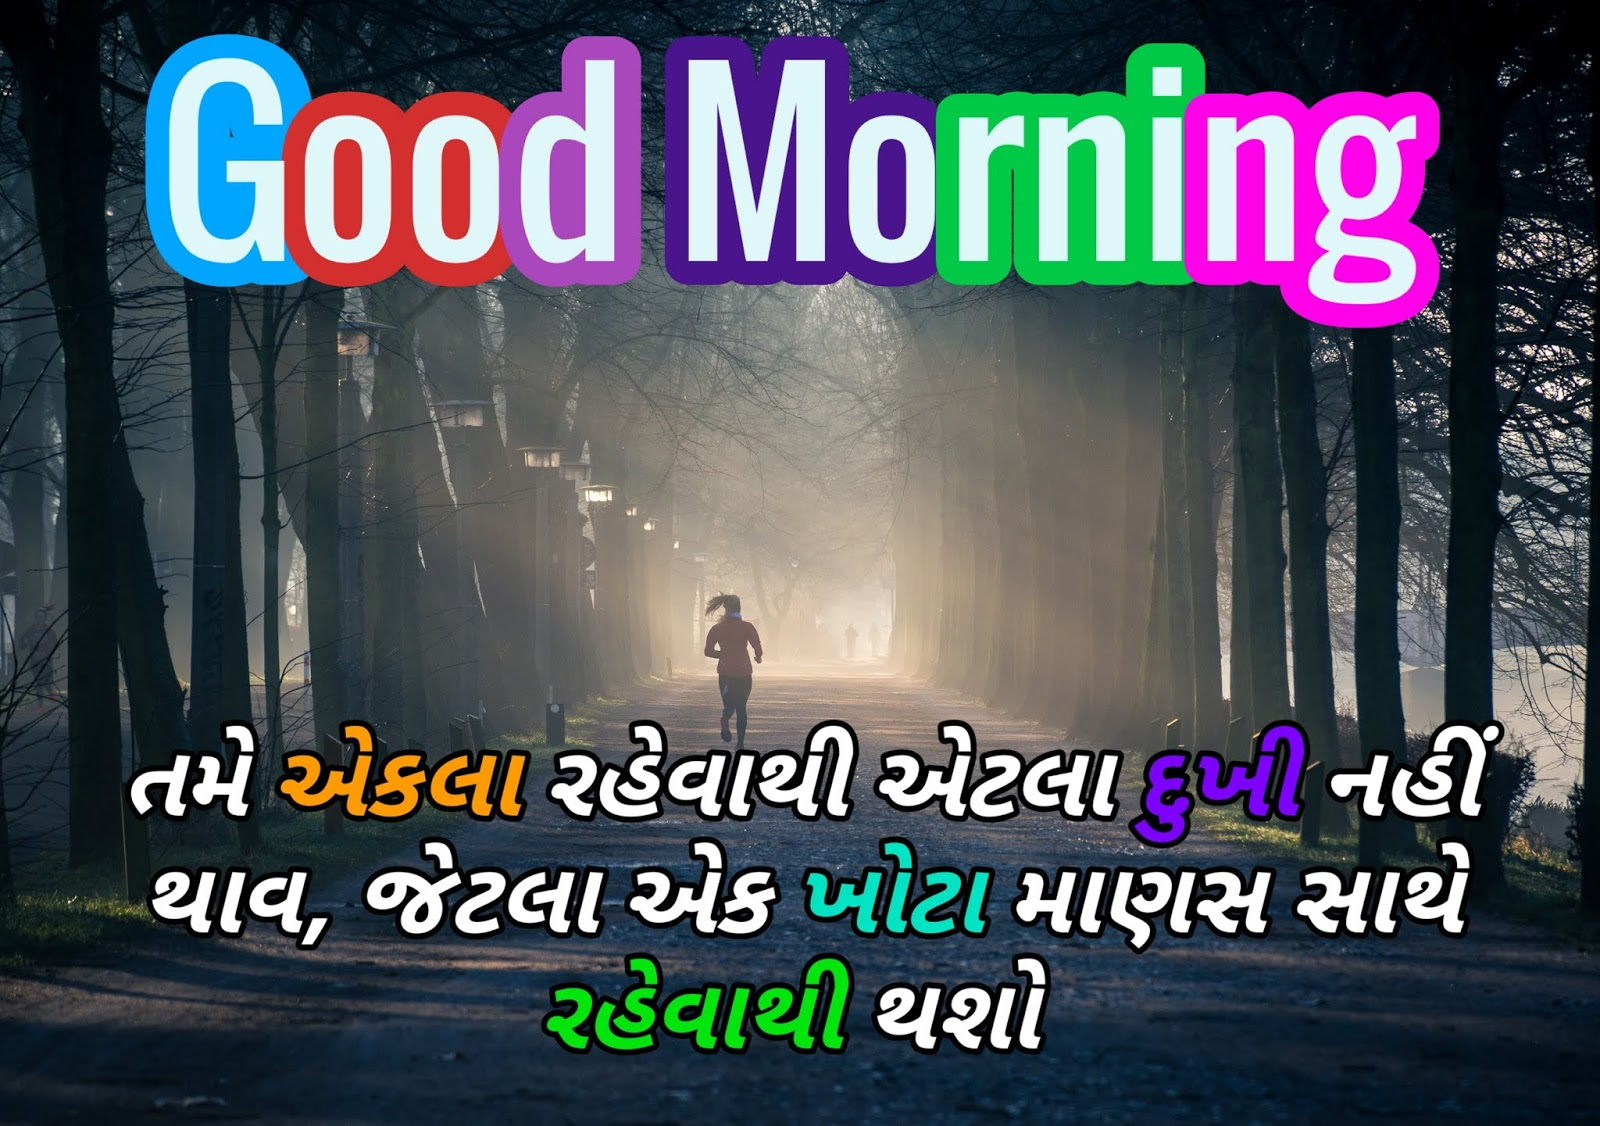 [Good Morning Special] Gujarati Good Morning image Status and Quotes